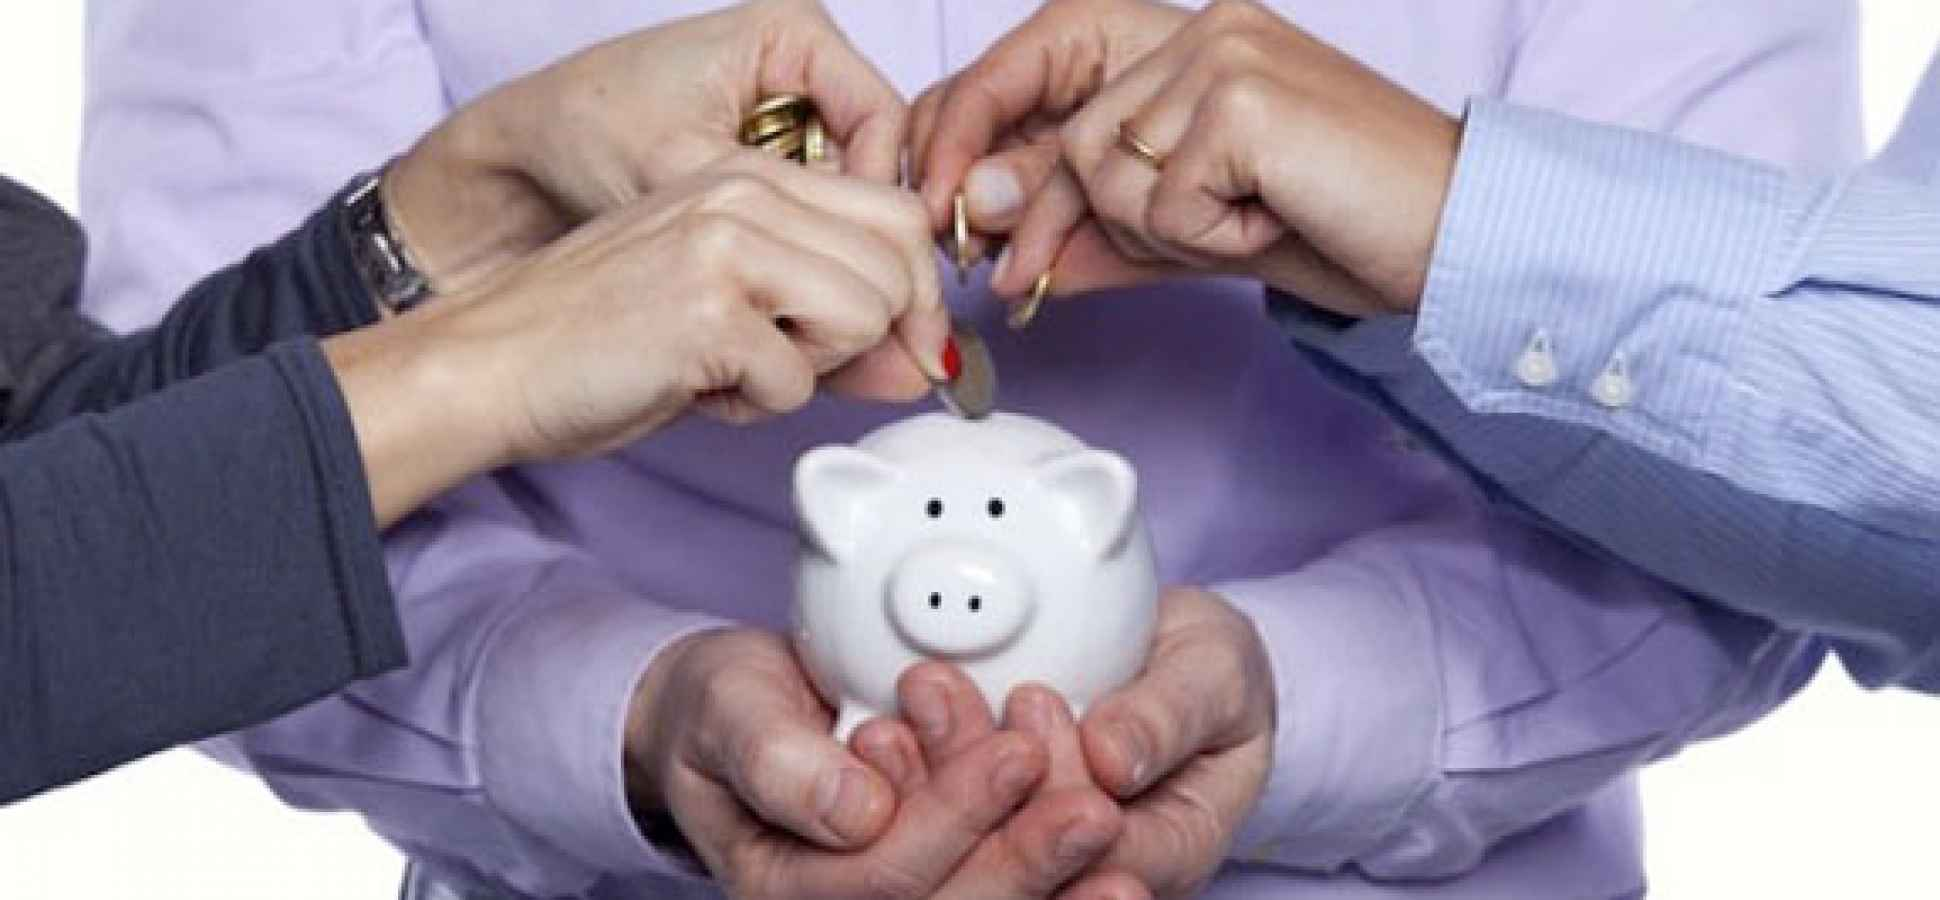 3 Reasons to Crowdfund Your Next Project (Hint: It's Not About the Money)